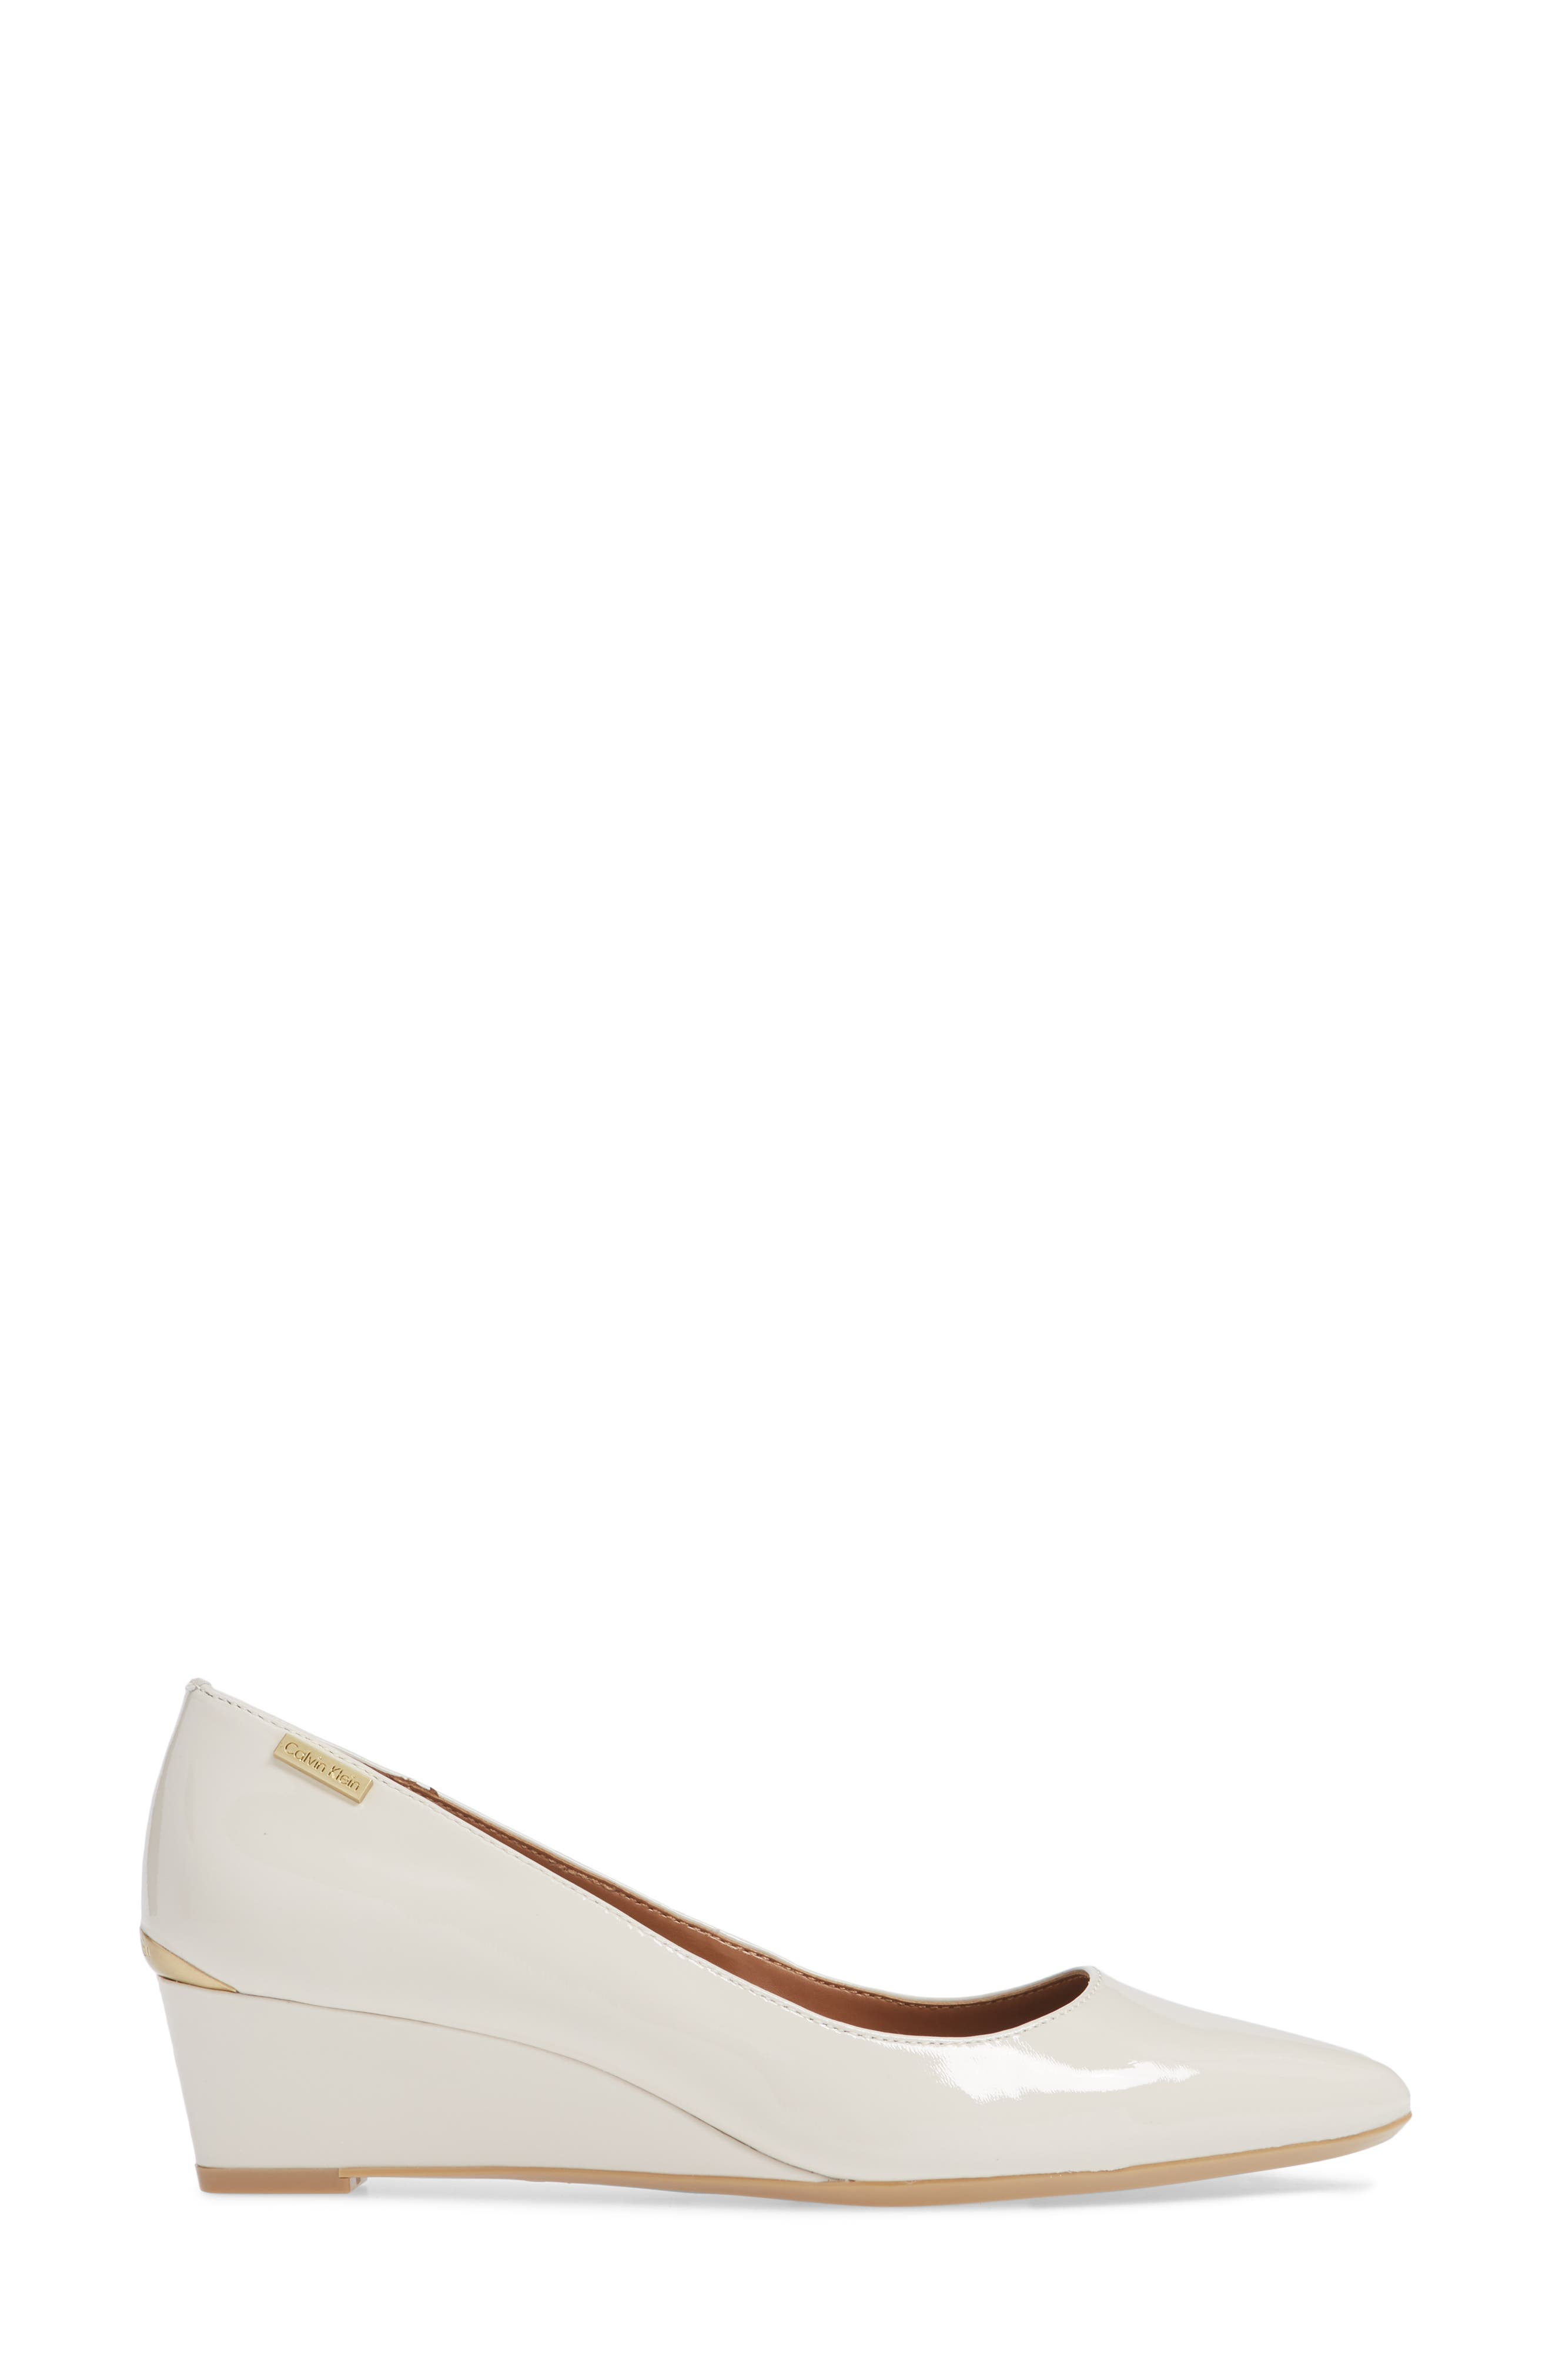 'Germina' Pointy Toe Wedge,                             Alternate thumbnail 3, color,                             SOFT WHITE PATENT